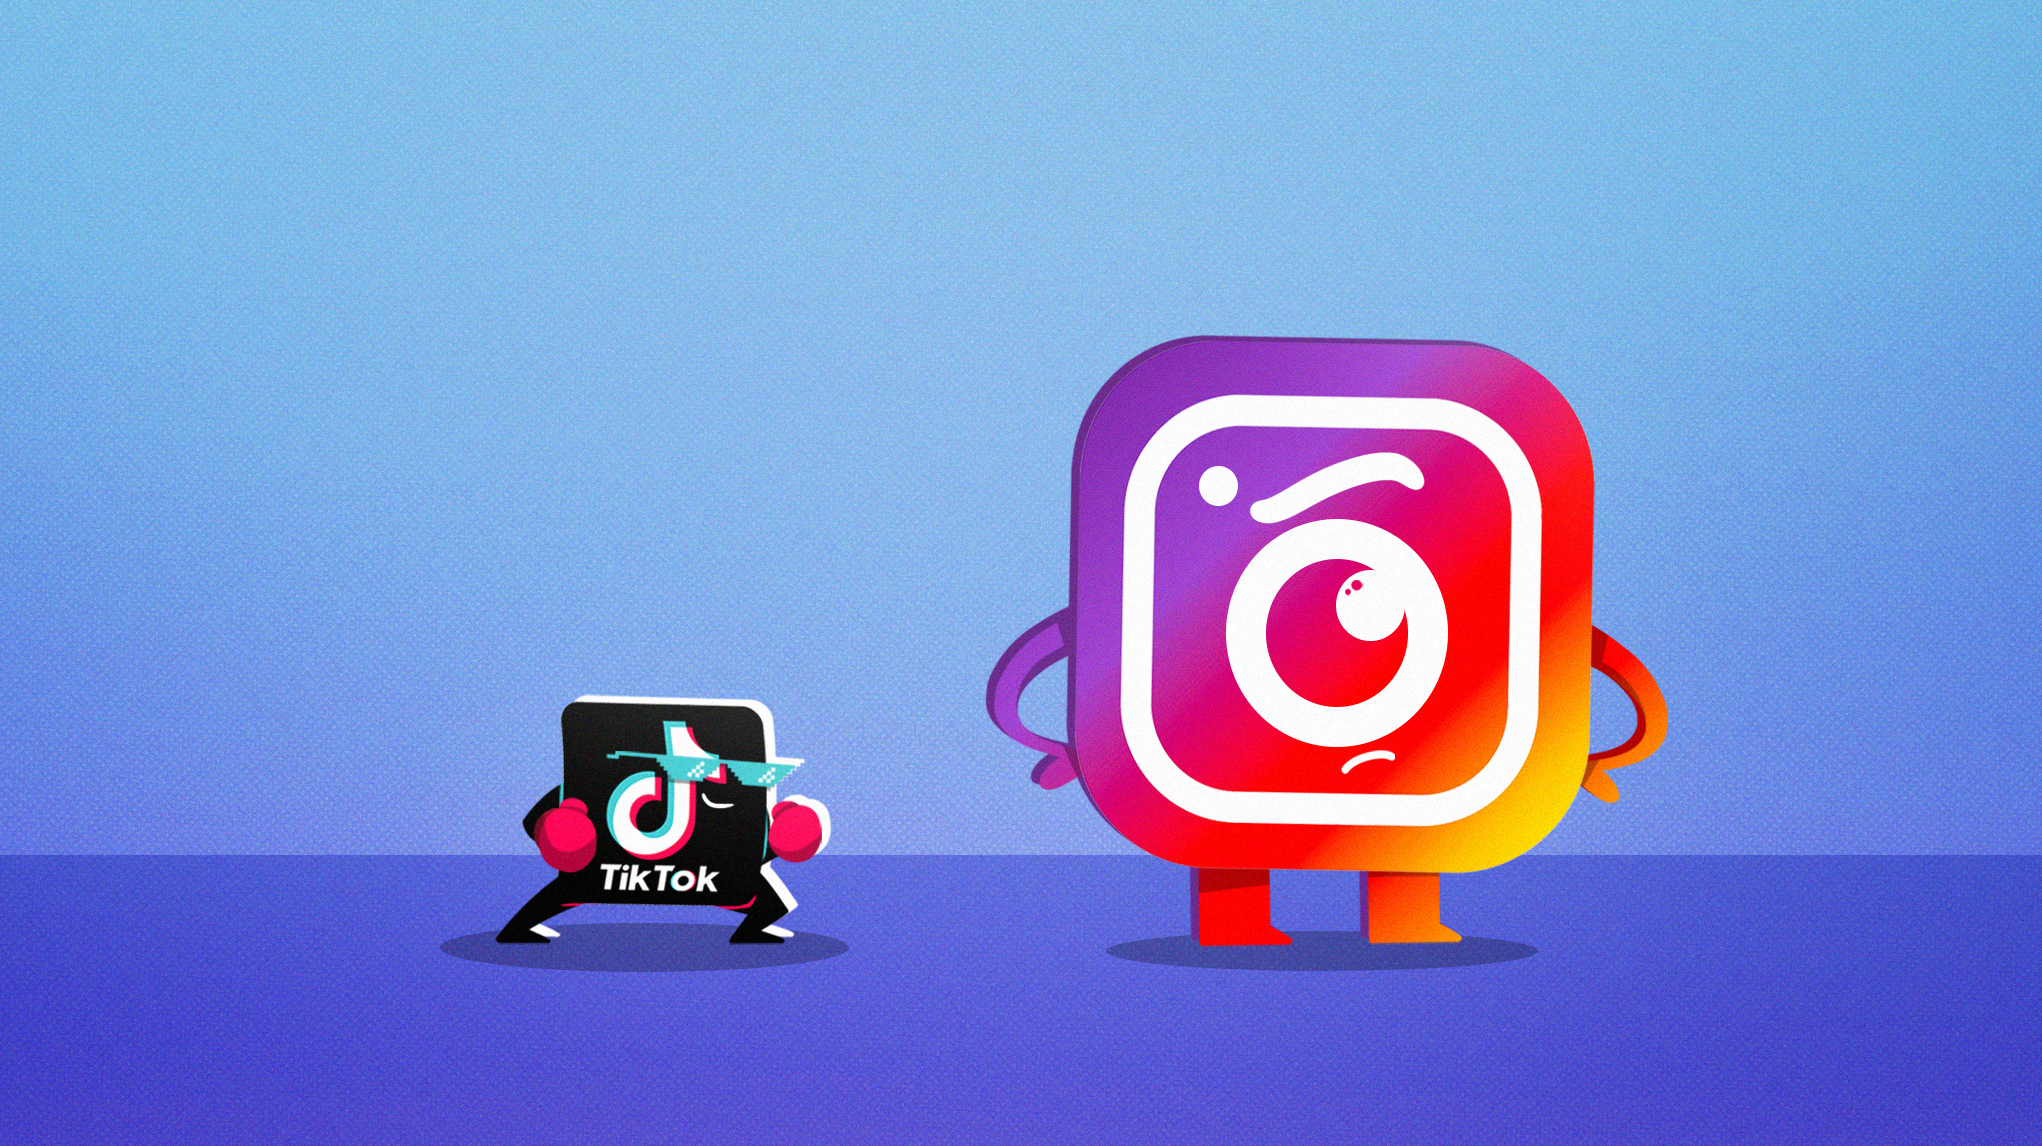 Battle of the Internet Giants | What is TikTok and Why it is Instagram's Biggest Challenger